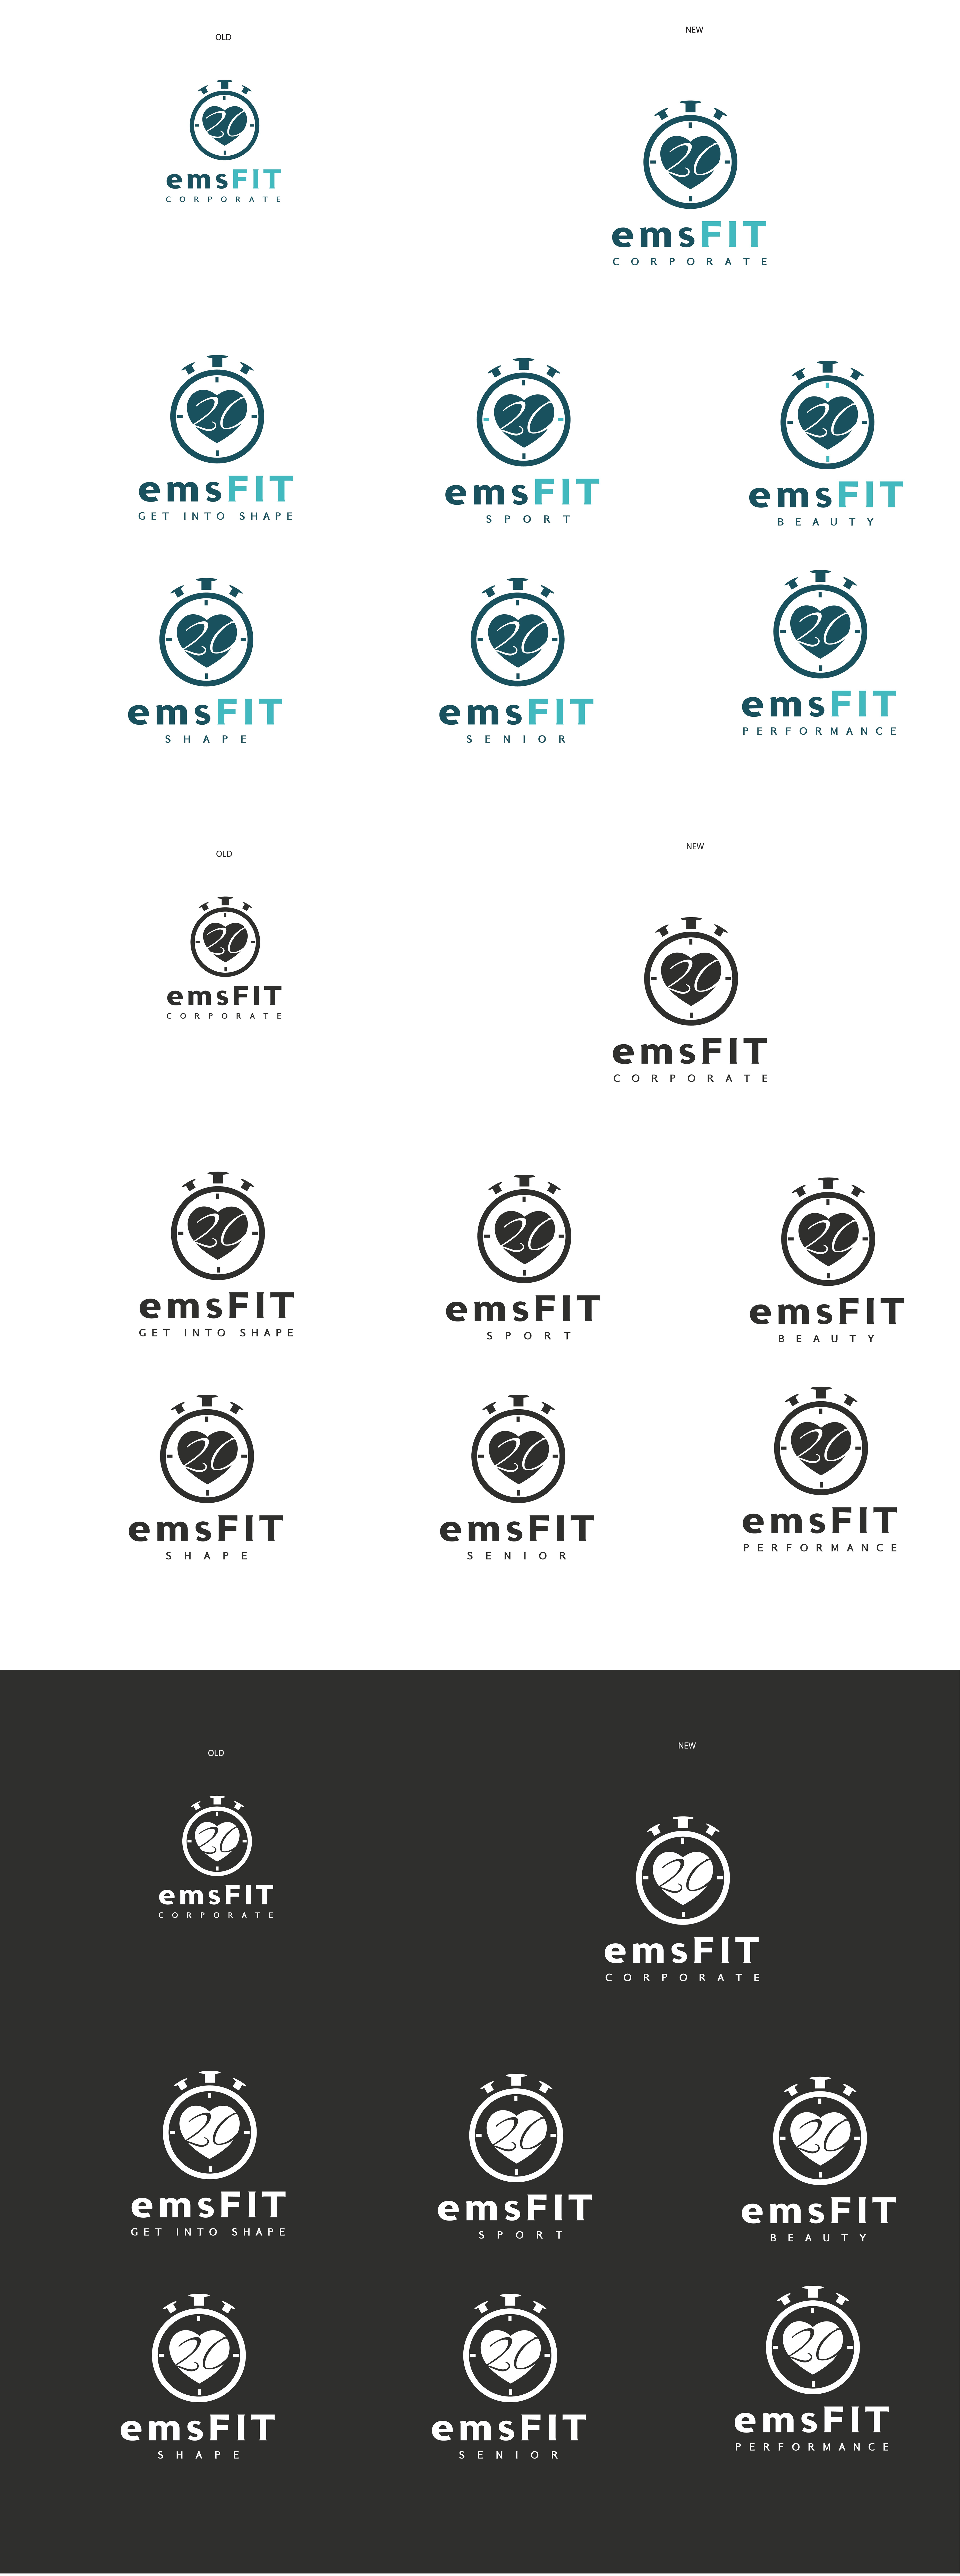 Create a clever logo for emsFIT to attract an affluent (and diverse) audience